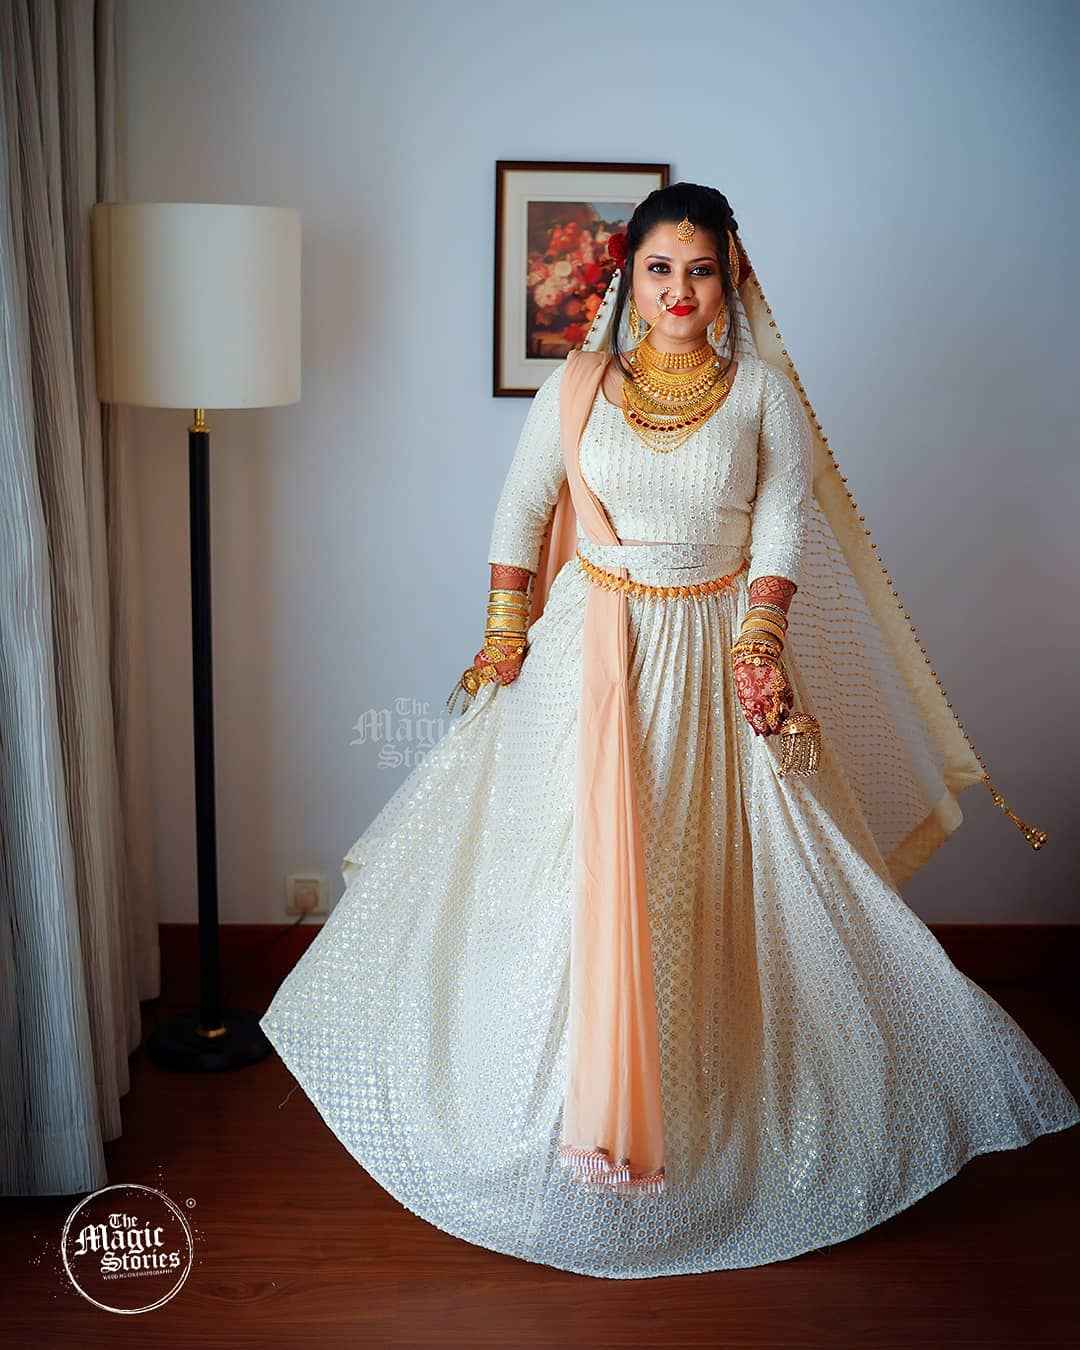 White Lehenga Mallu Wedding